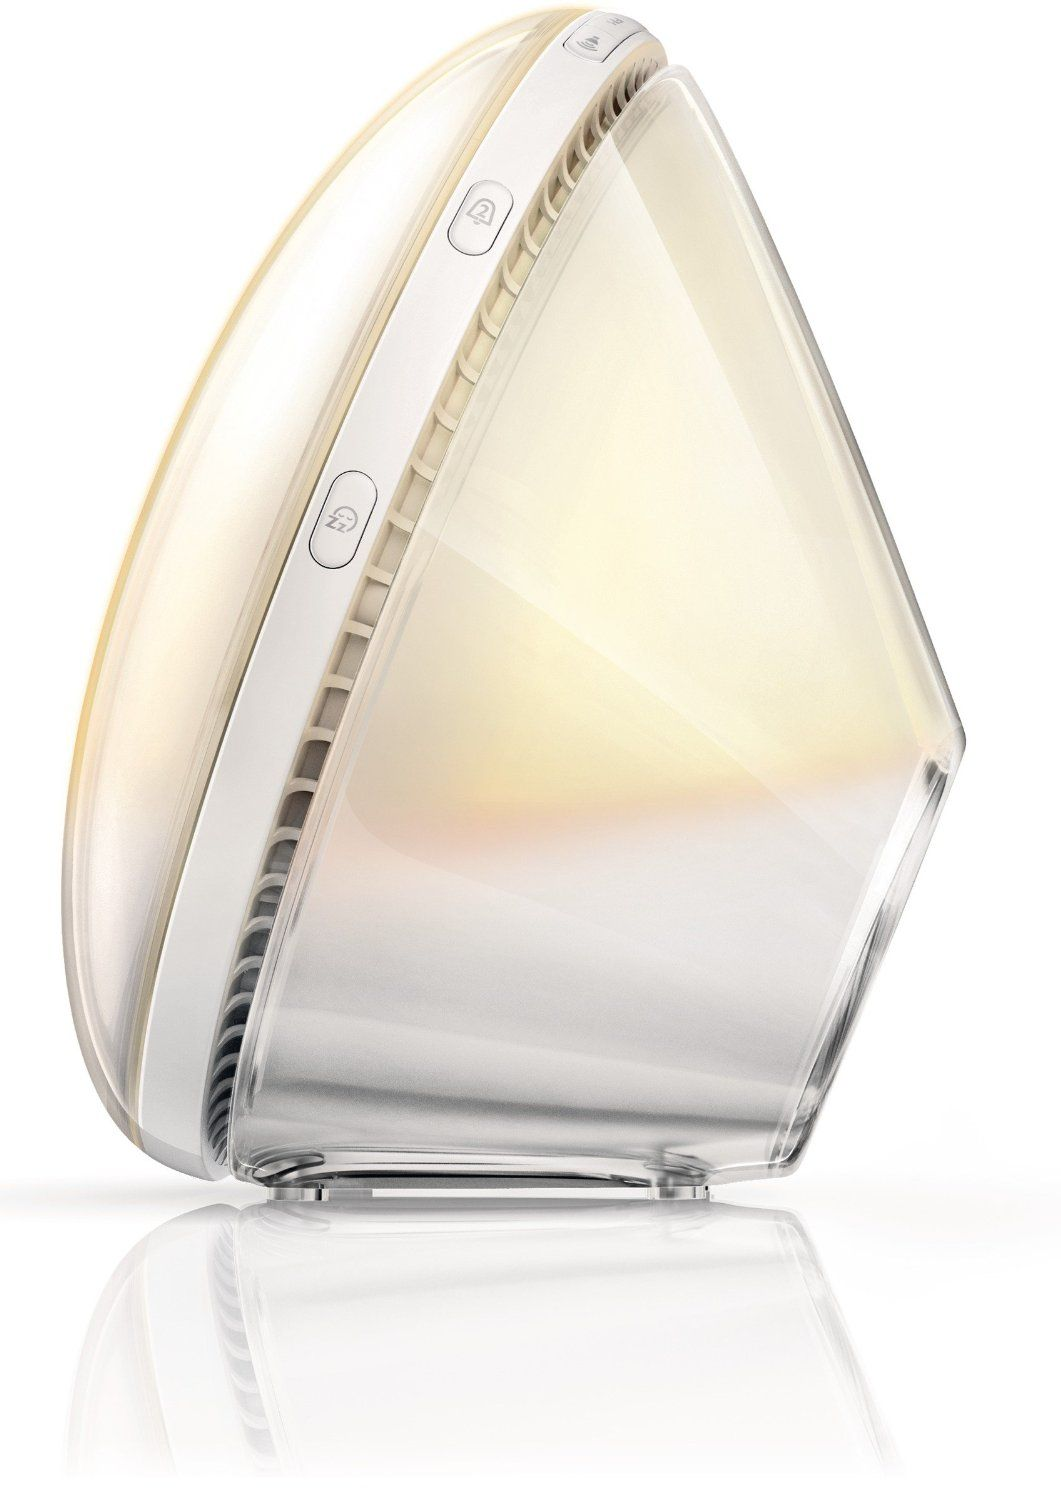 Buy The Philips Wake Up Light Hf3520 60 Wake Up Light With Images